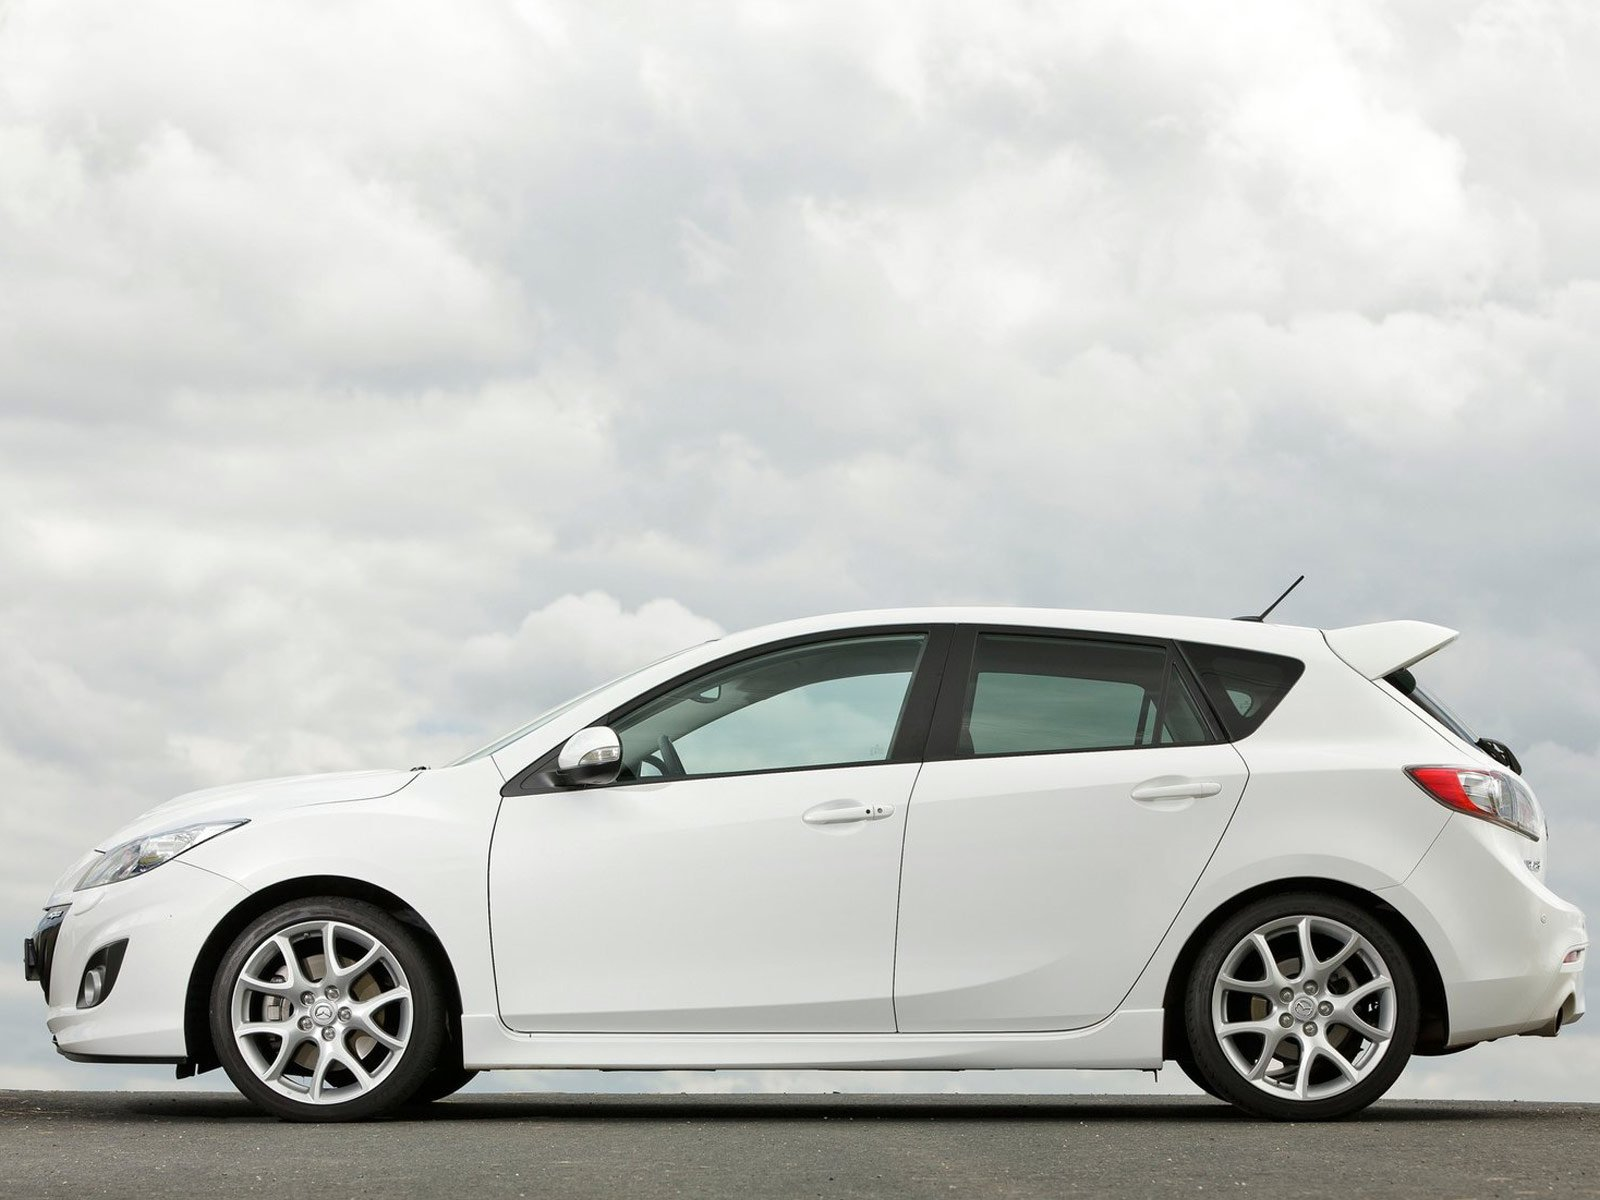 Latest 2012 Mazda 3 Mps Japanese Car Photos Free Download